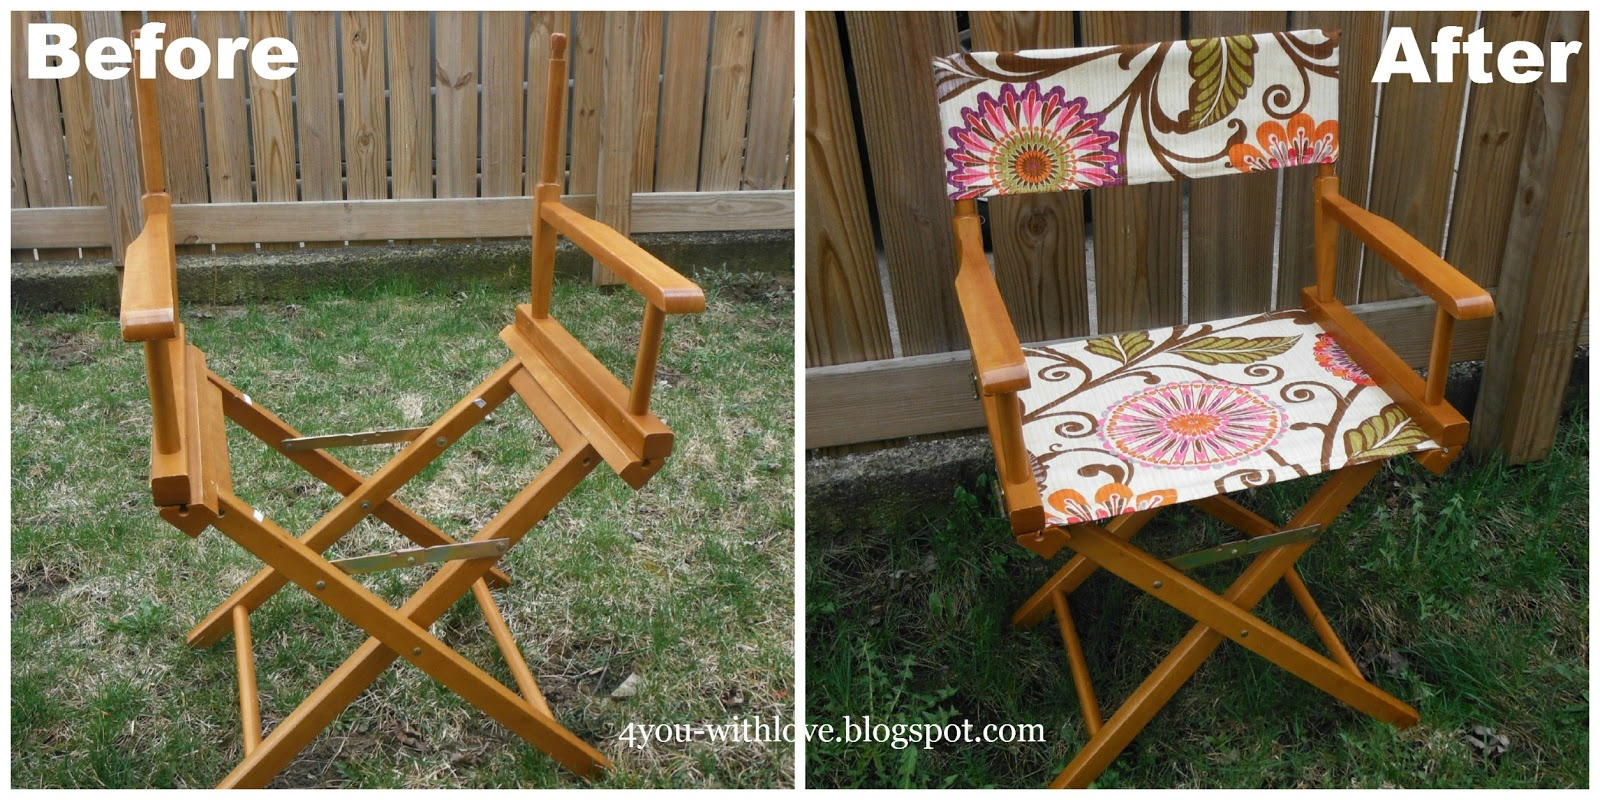 ... Amazing Directoru0027s Chair Frame For Just $3.50. So Using Just 1/2 Yard  Of U201cUrban Blossomu201d Fabric, I Was Able To Make A New Seat And Back For This  Chair.